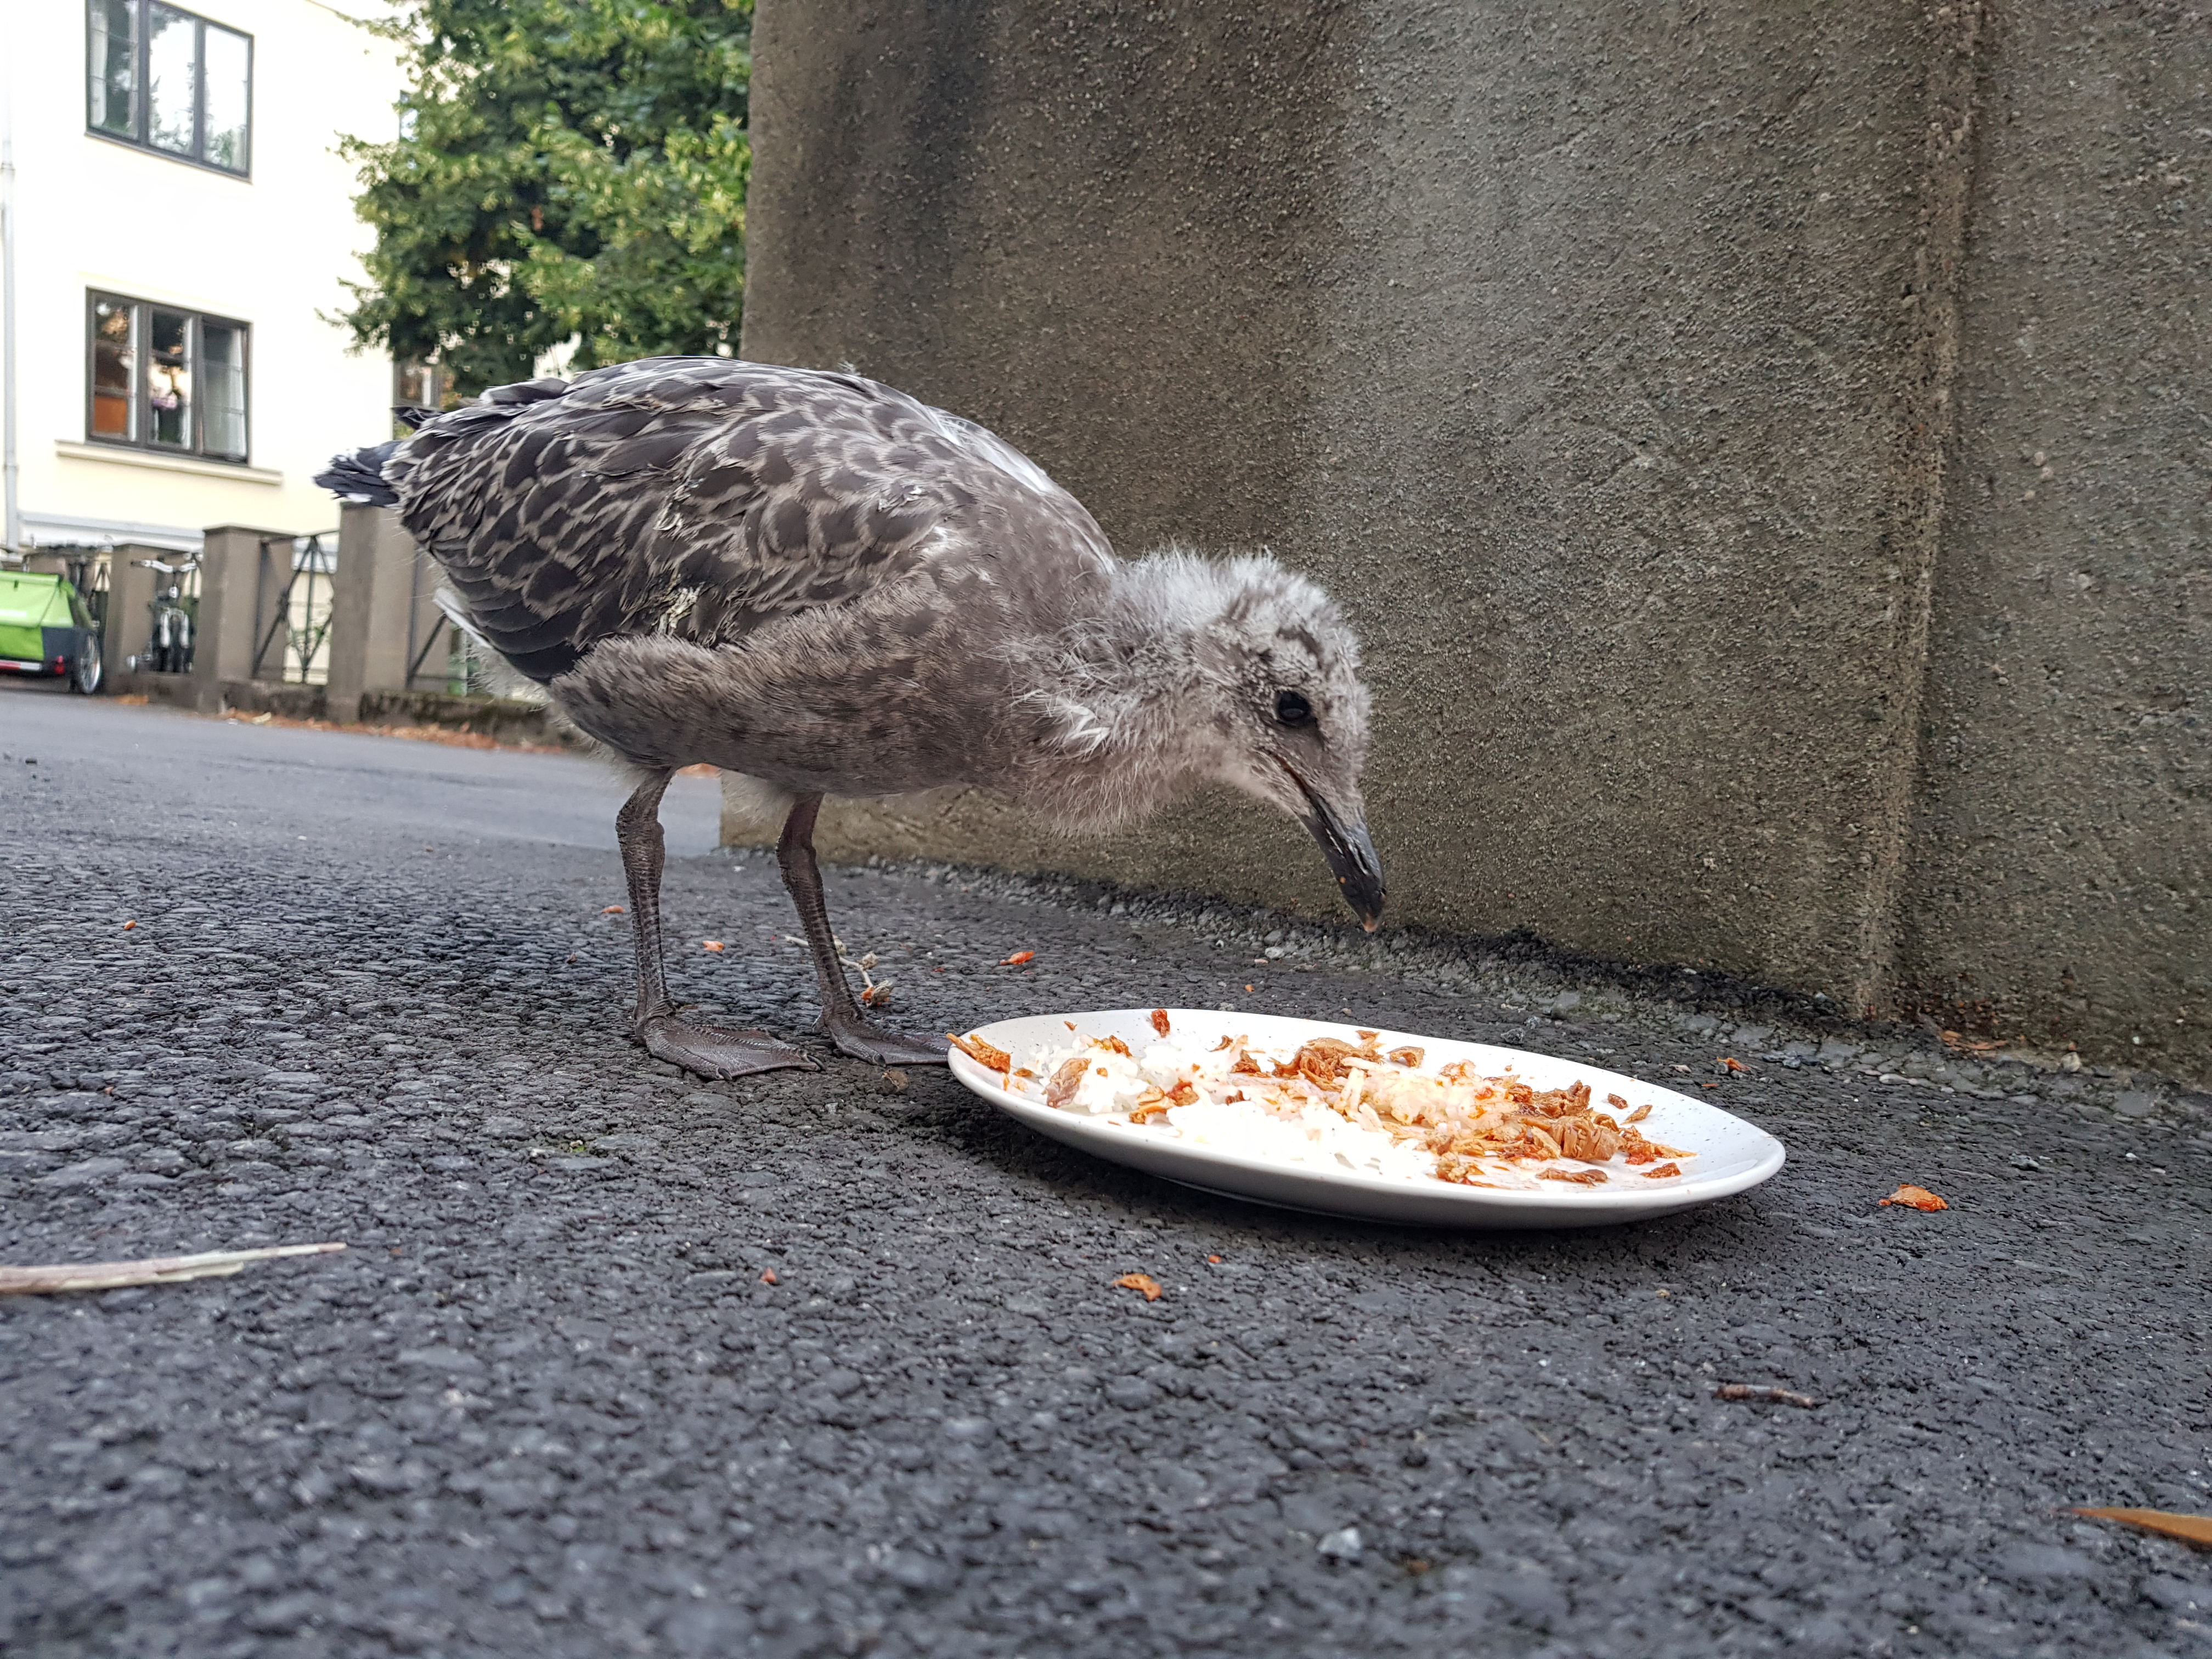 A photo of a baby seagull eating fish from a plate